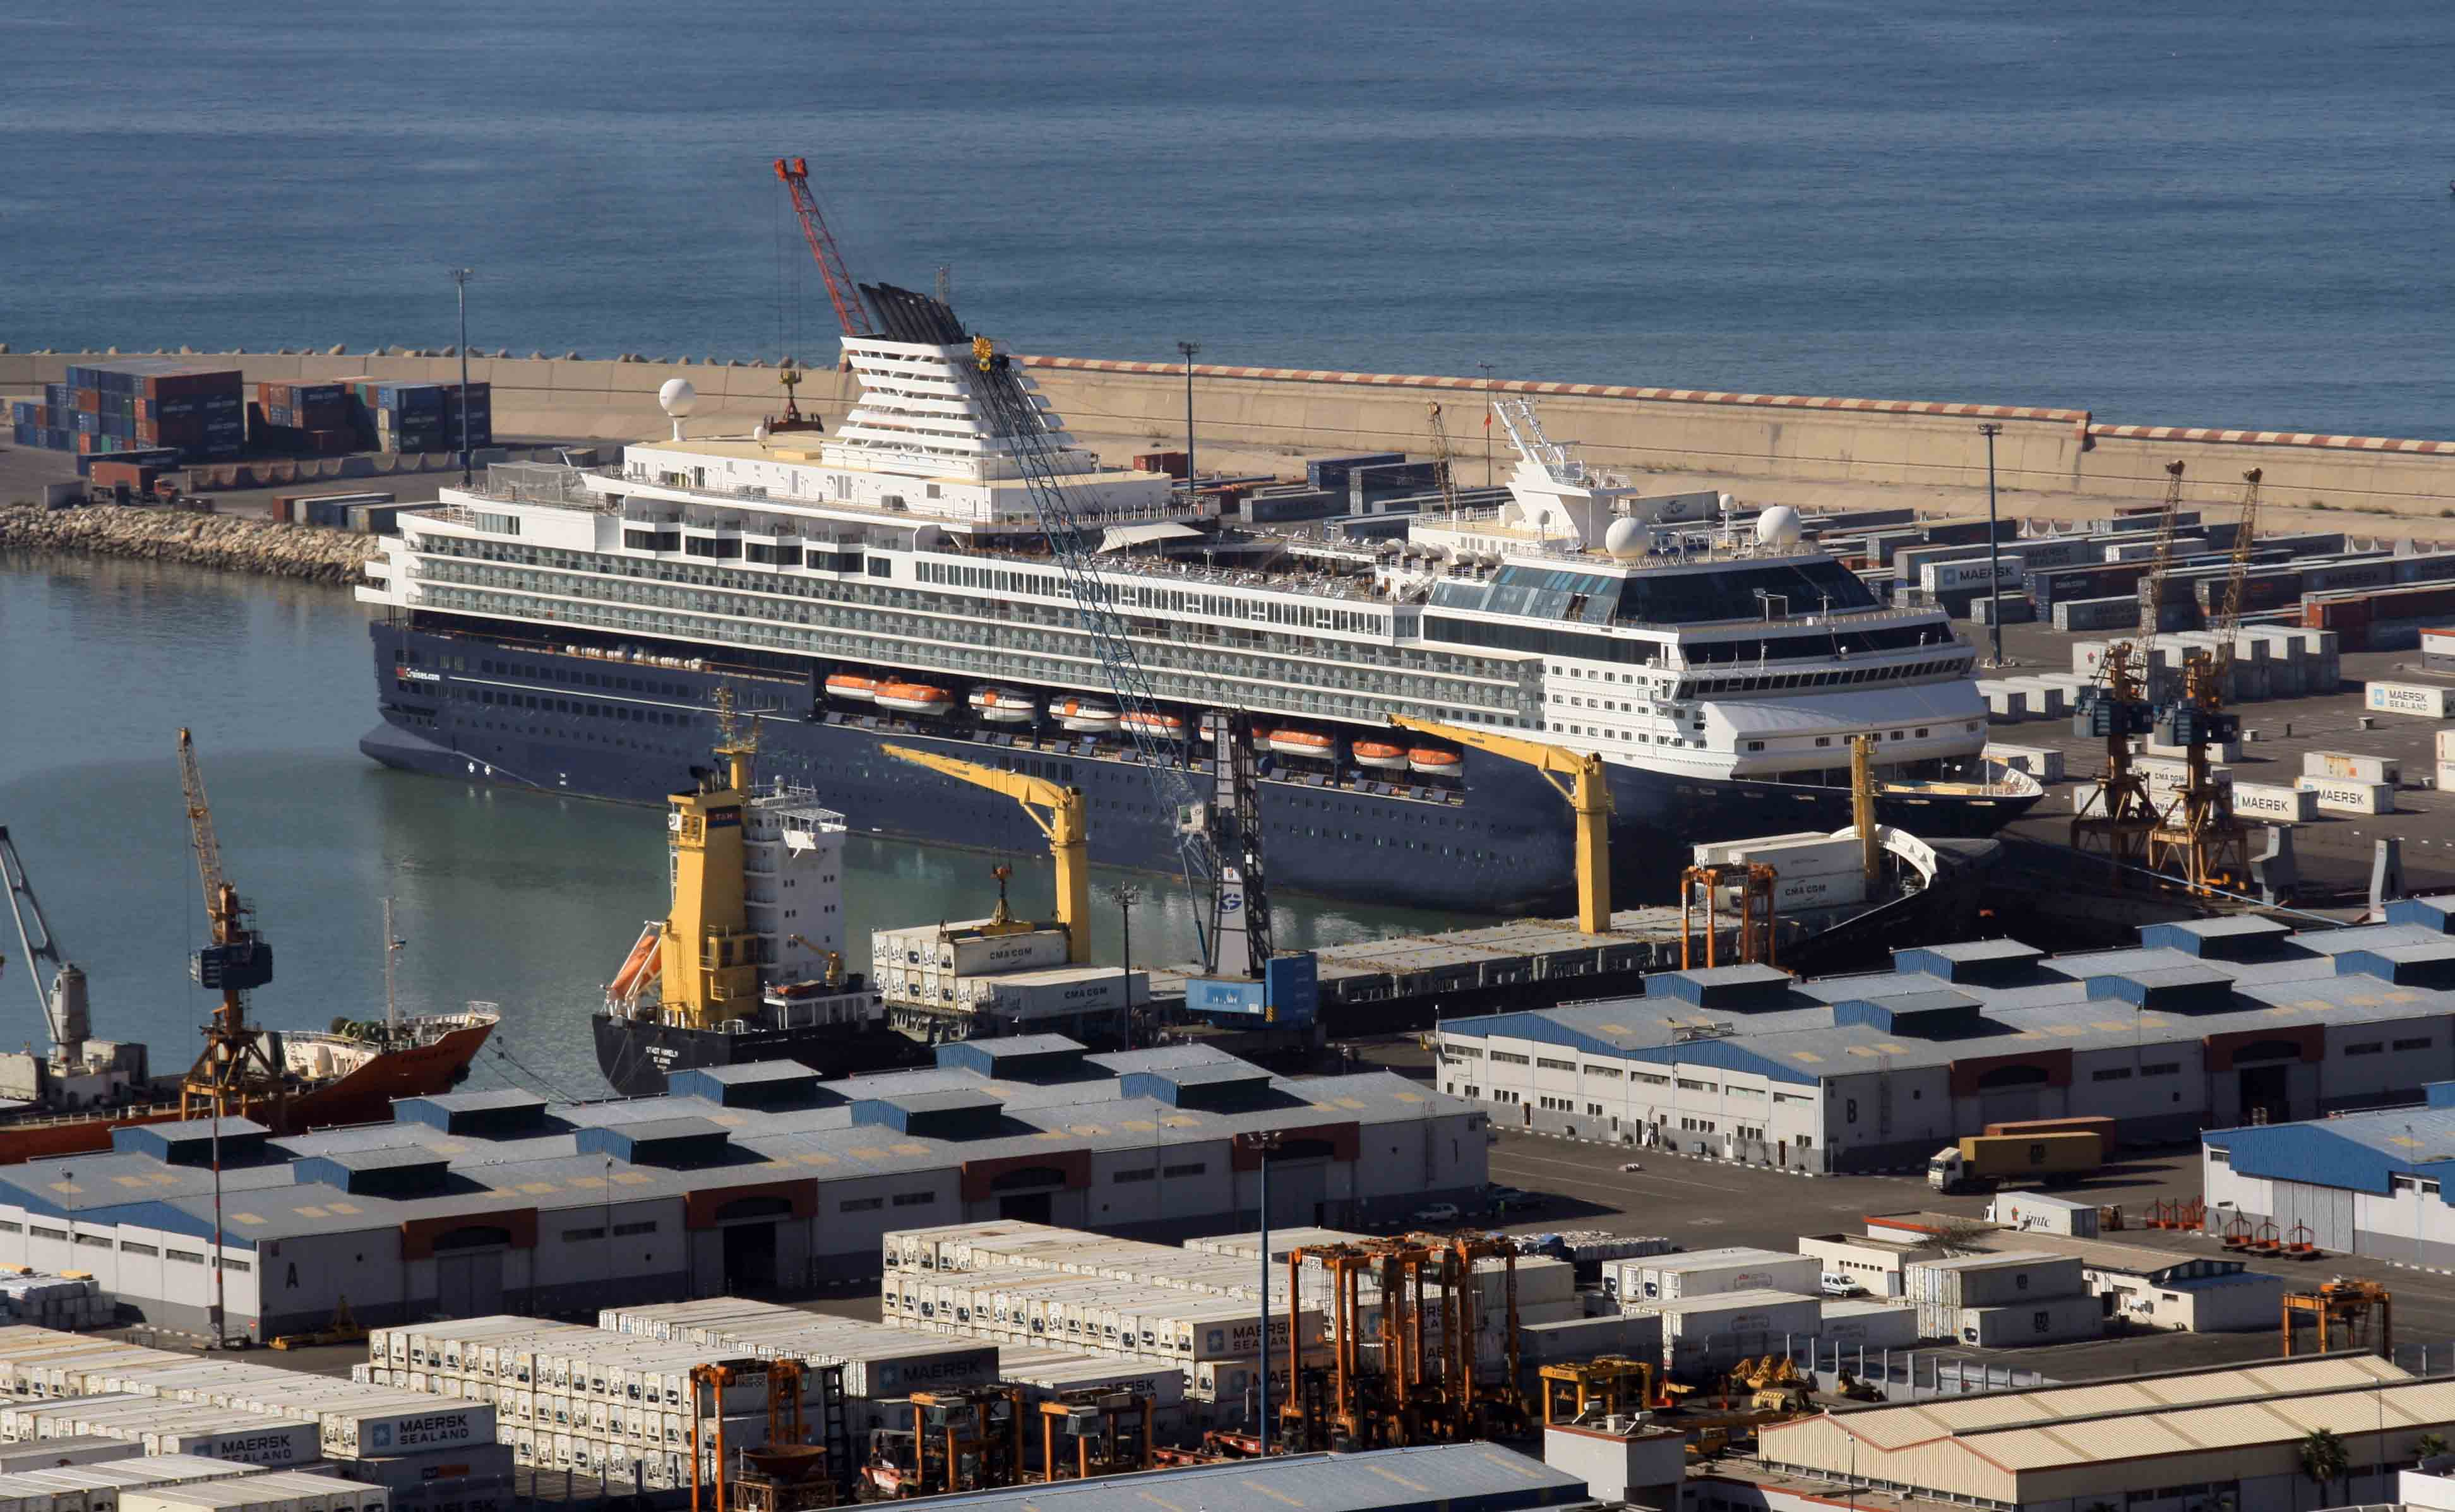 2010-12-14_morocco_agadir_port_cruise_ship_mein_schiff_1